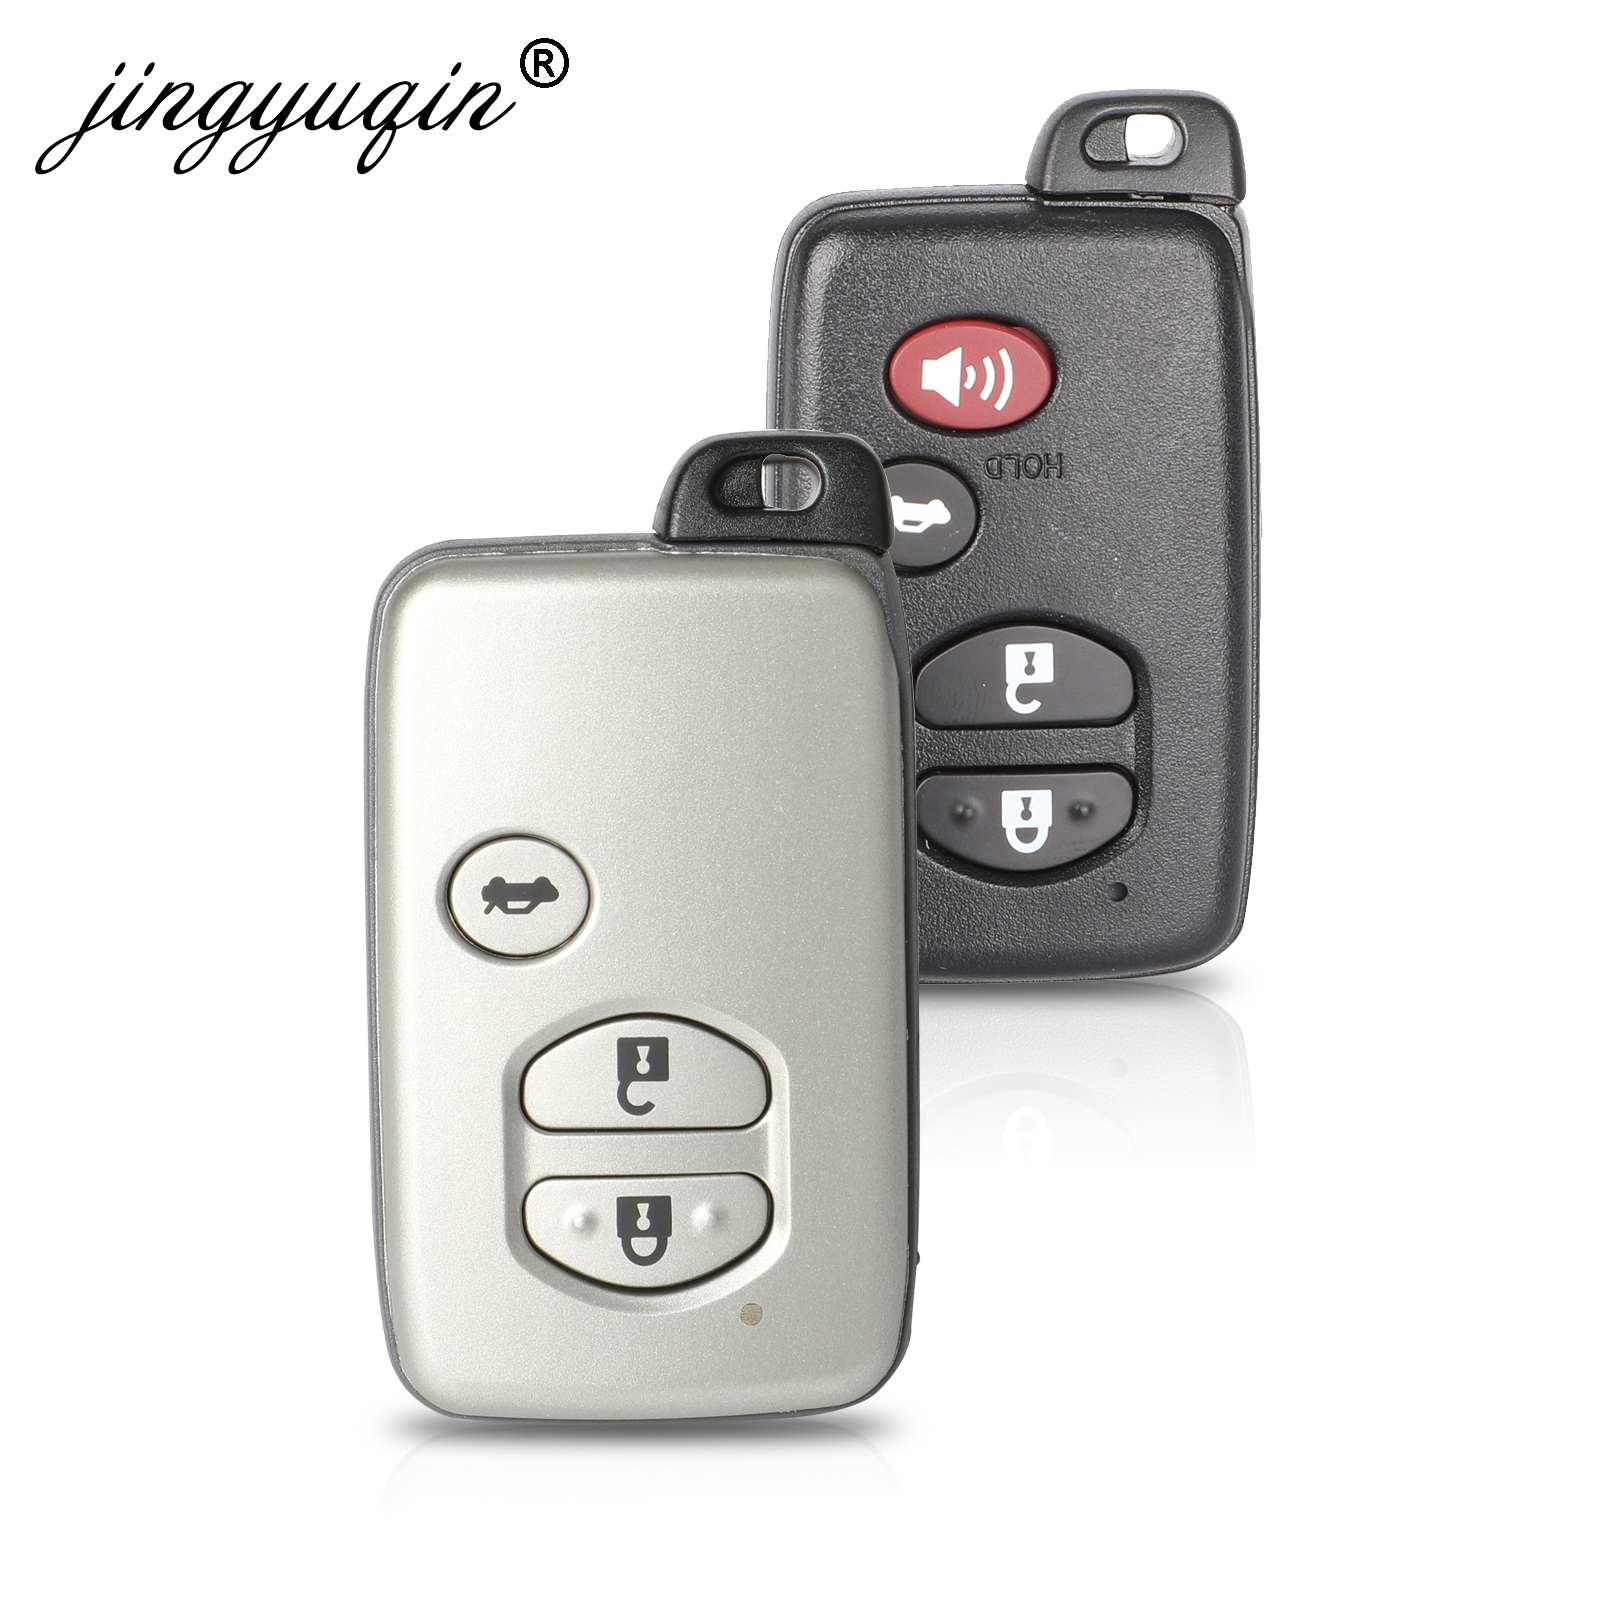 jingyuqin Smart Remote Key Case 3/4 Buttons Fob Shell For Toyota Aurion Avalon Landcruiser Camry Highlander RAV4jingyuqin Smart Remote Key Case 3/4 Buttons Fob Shell For Toyota Aurion Avalon Landcruiser Camry Highlander RAV4